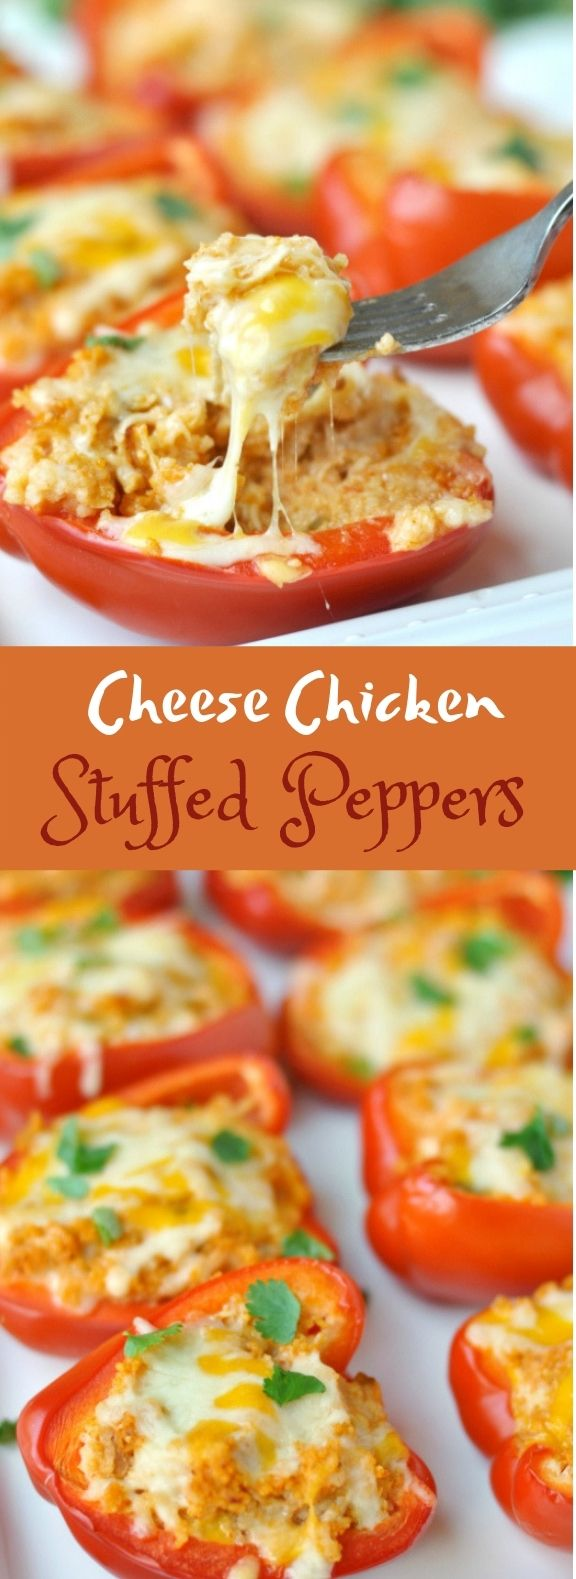 Cheesy Chicken Stuffed Peppers Healthy Lowcarb Stuffed Peppers Recipes Chicken Stuffed Peppers